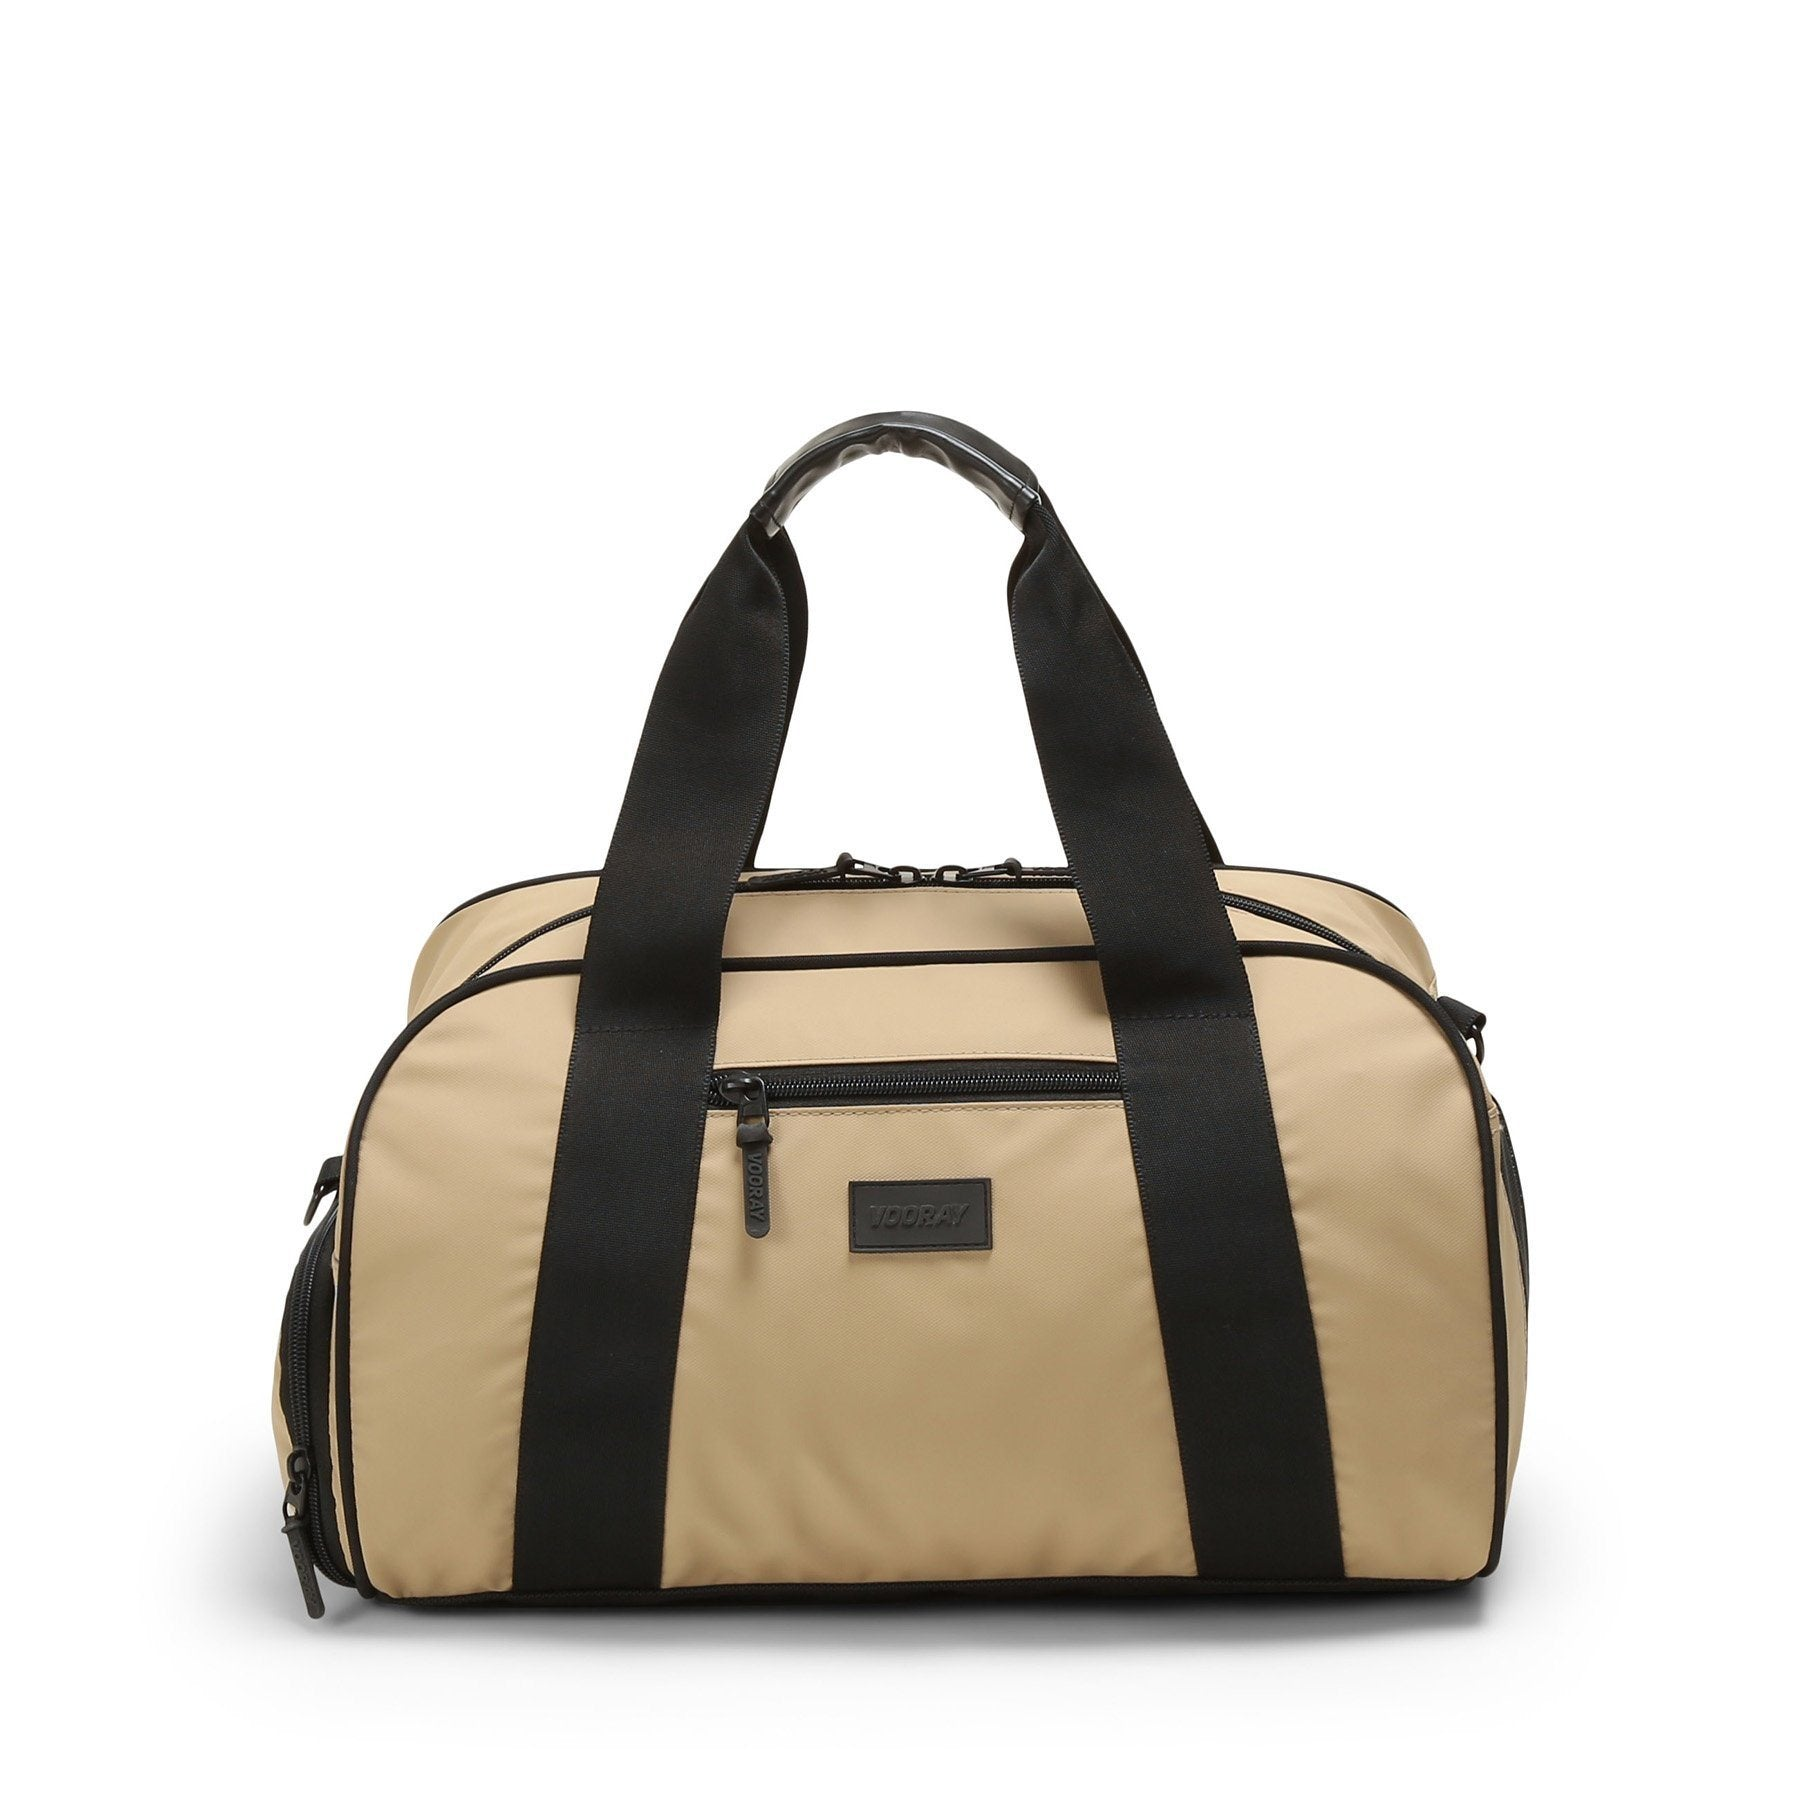 Vooray Burner Gym Duffel-Sonoran Tan